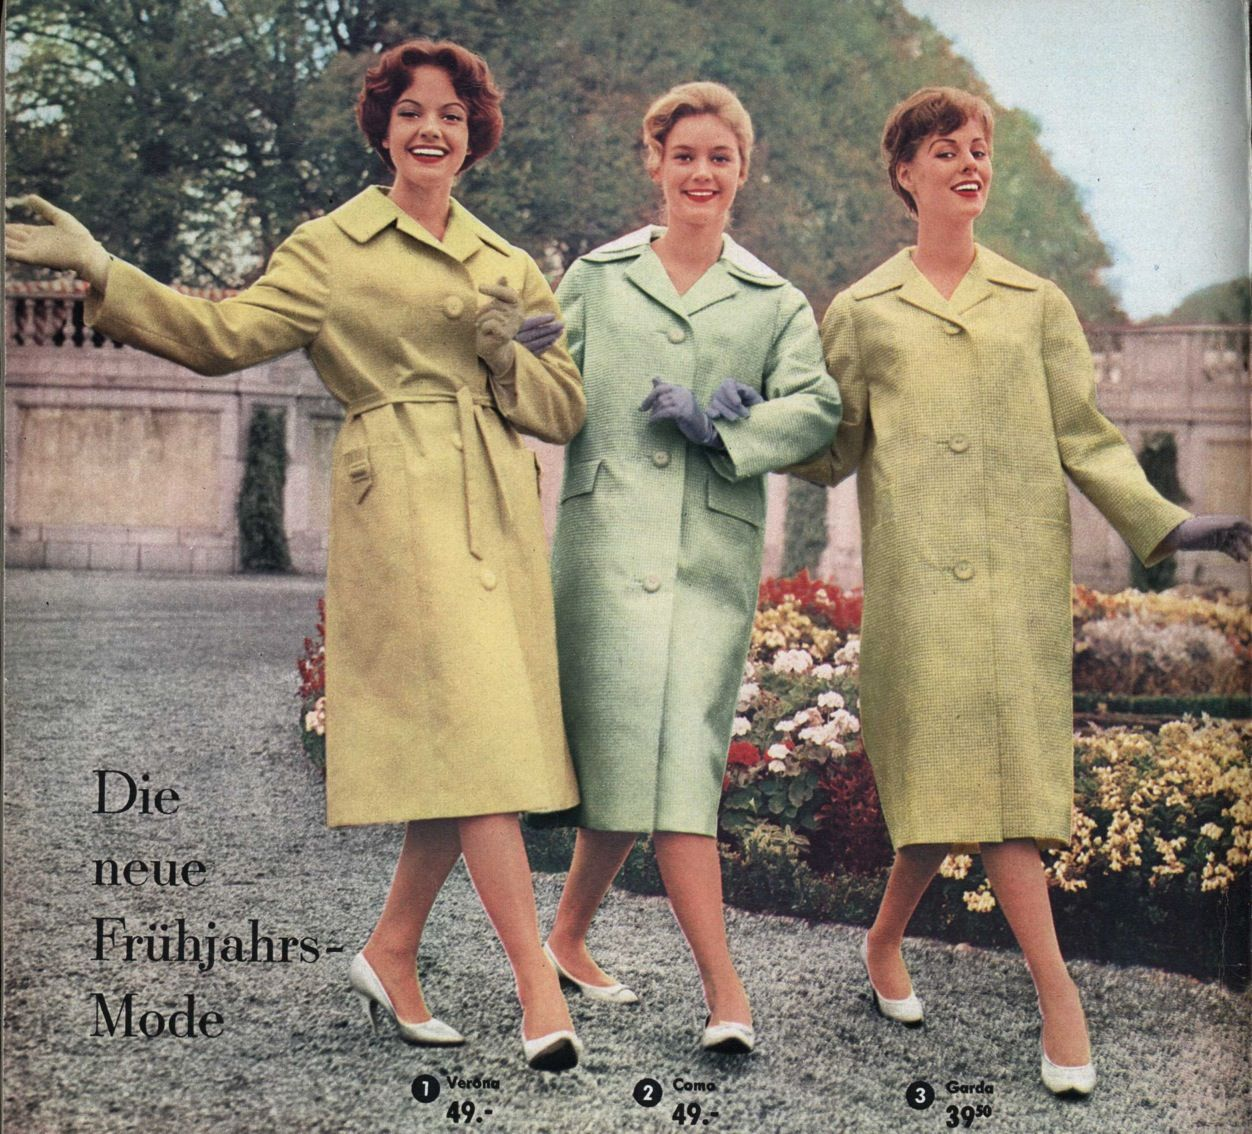 1950s Female Fashion - Bing Images | Bye Bye Birdie ...